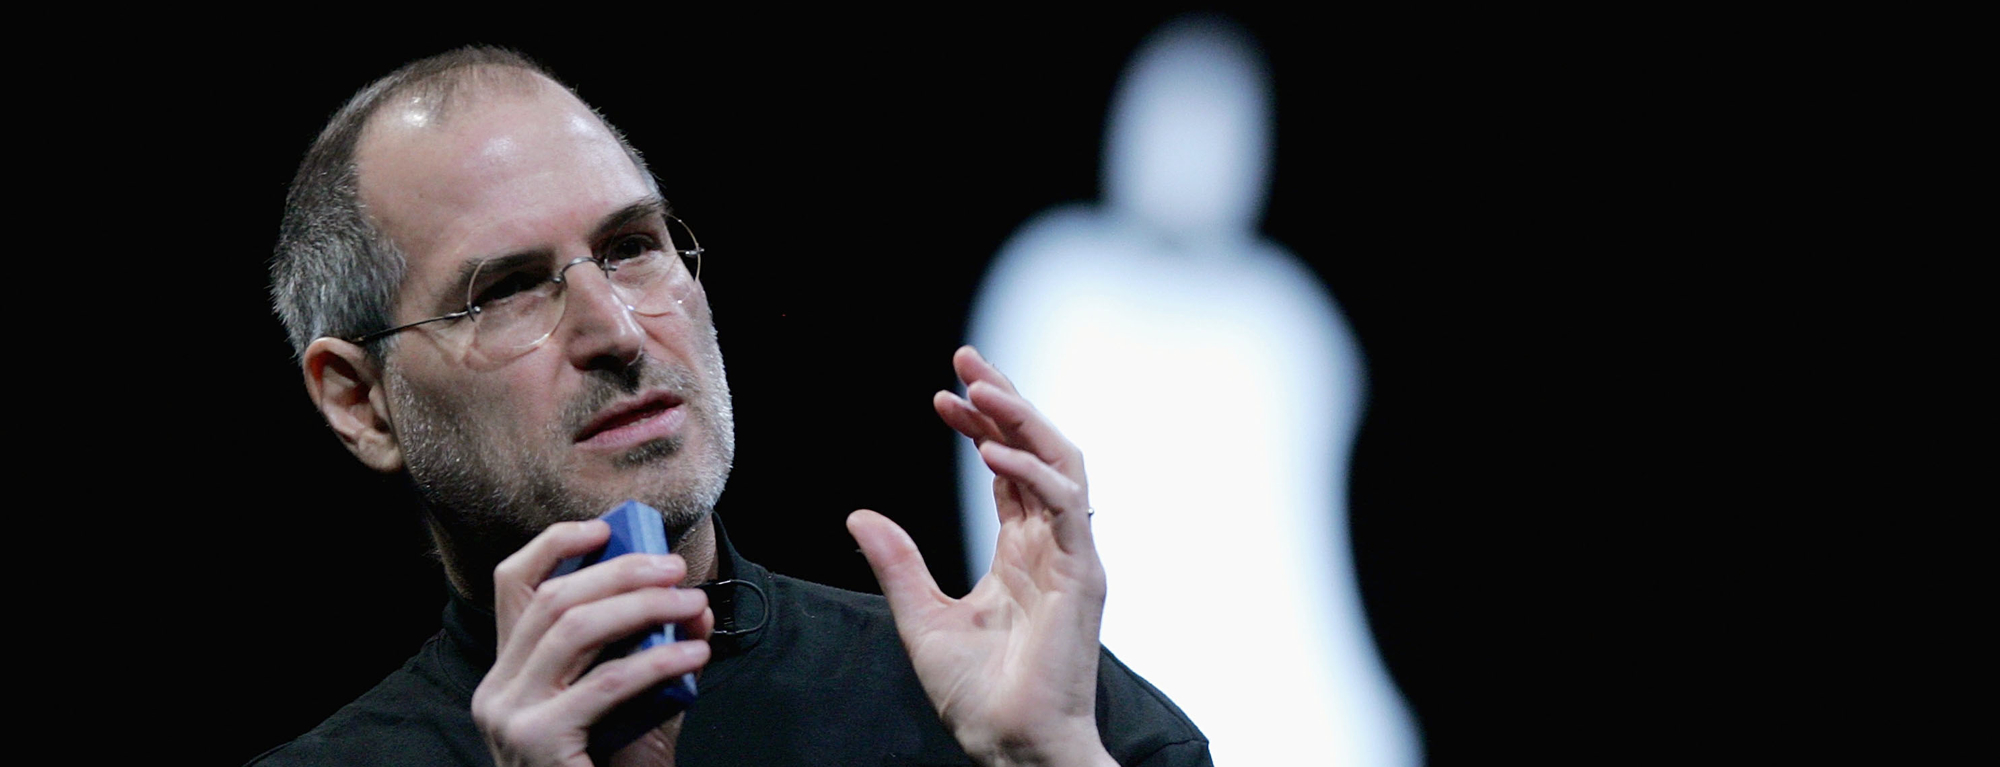 10 Steve Jobs Videos you Should Watch Instead of 'Jobs'